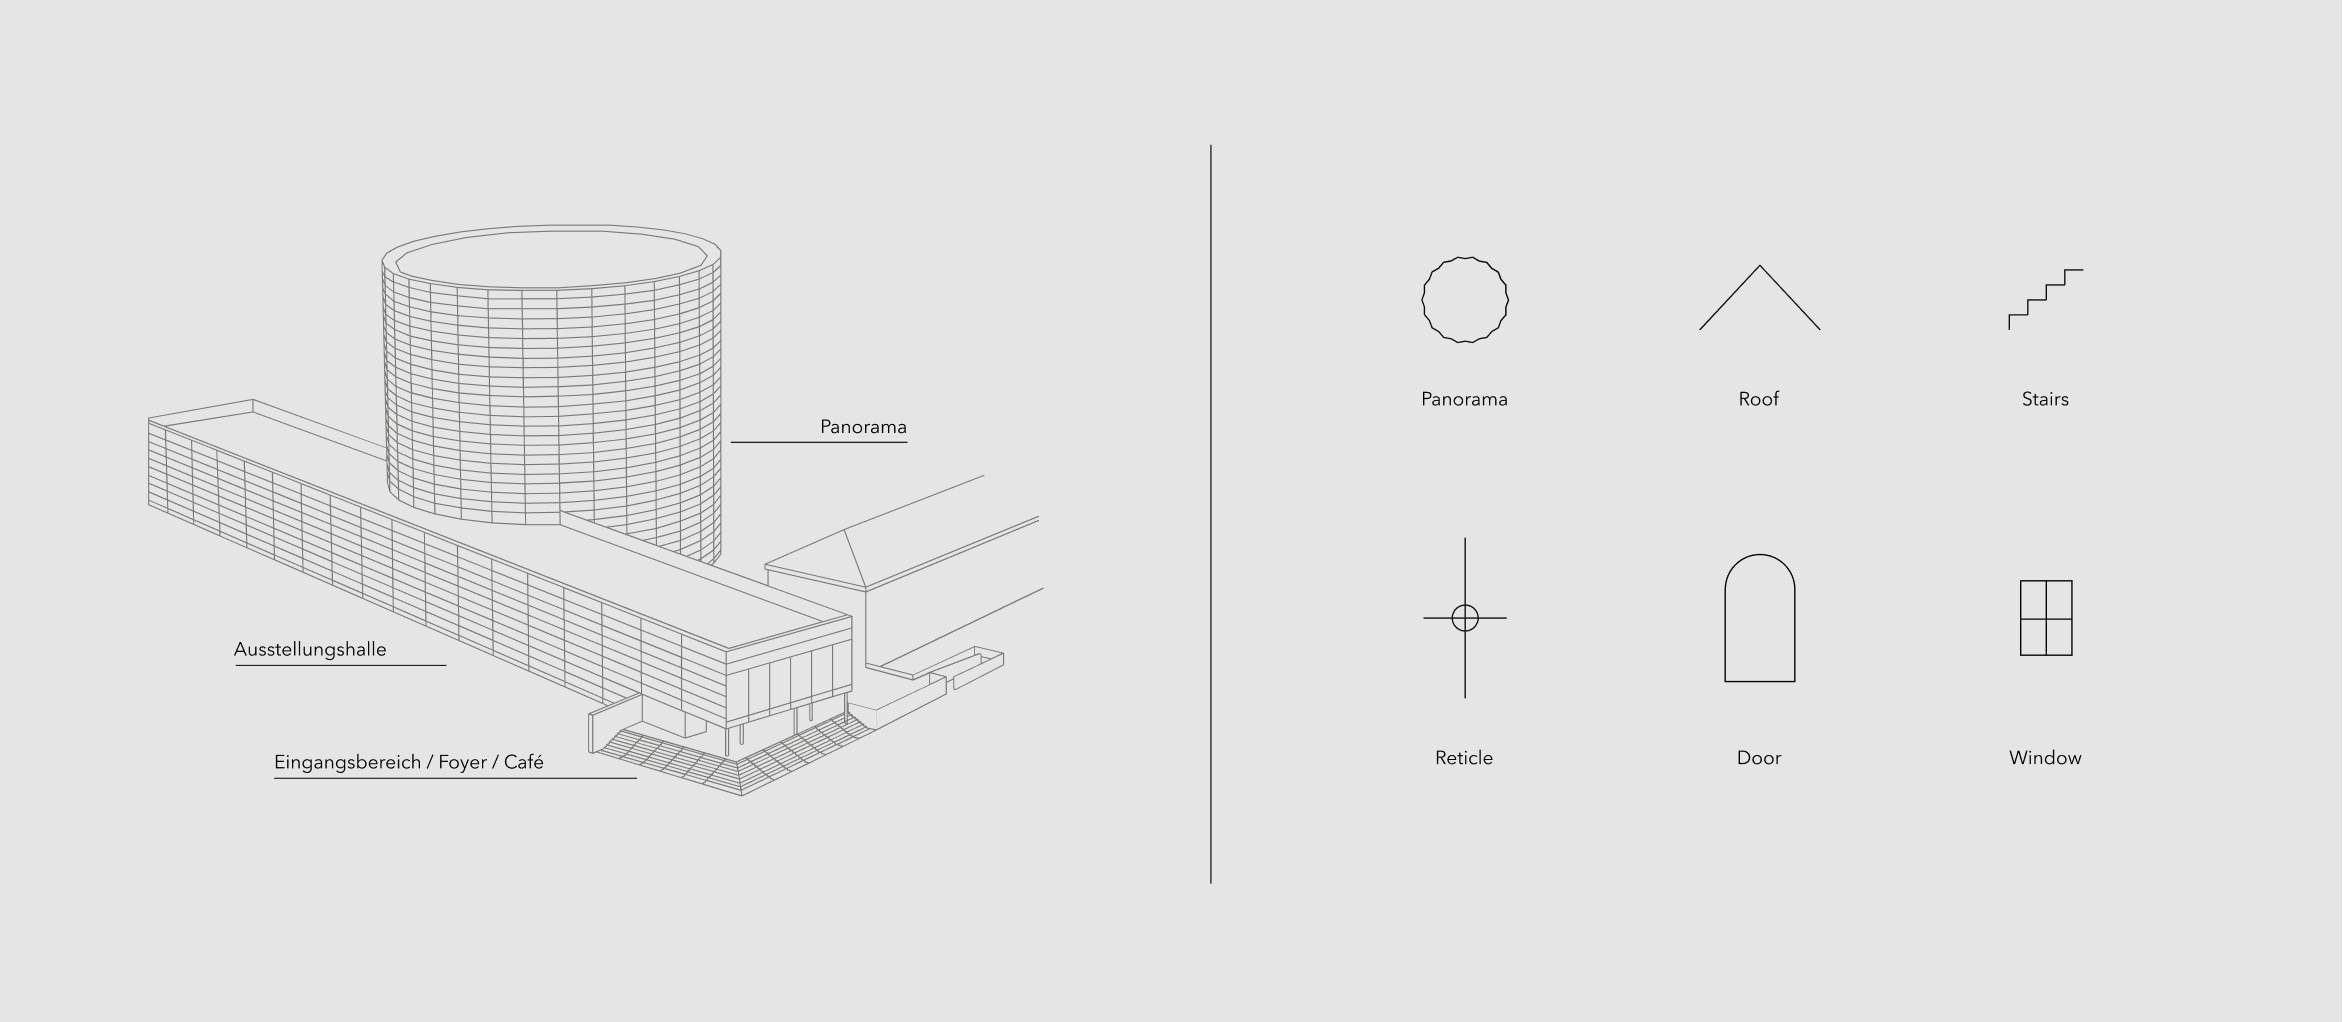 Minimalistic graphics for the website of an architecture studio designed by Alexandra Linortner